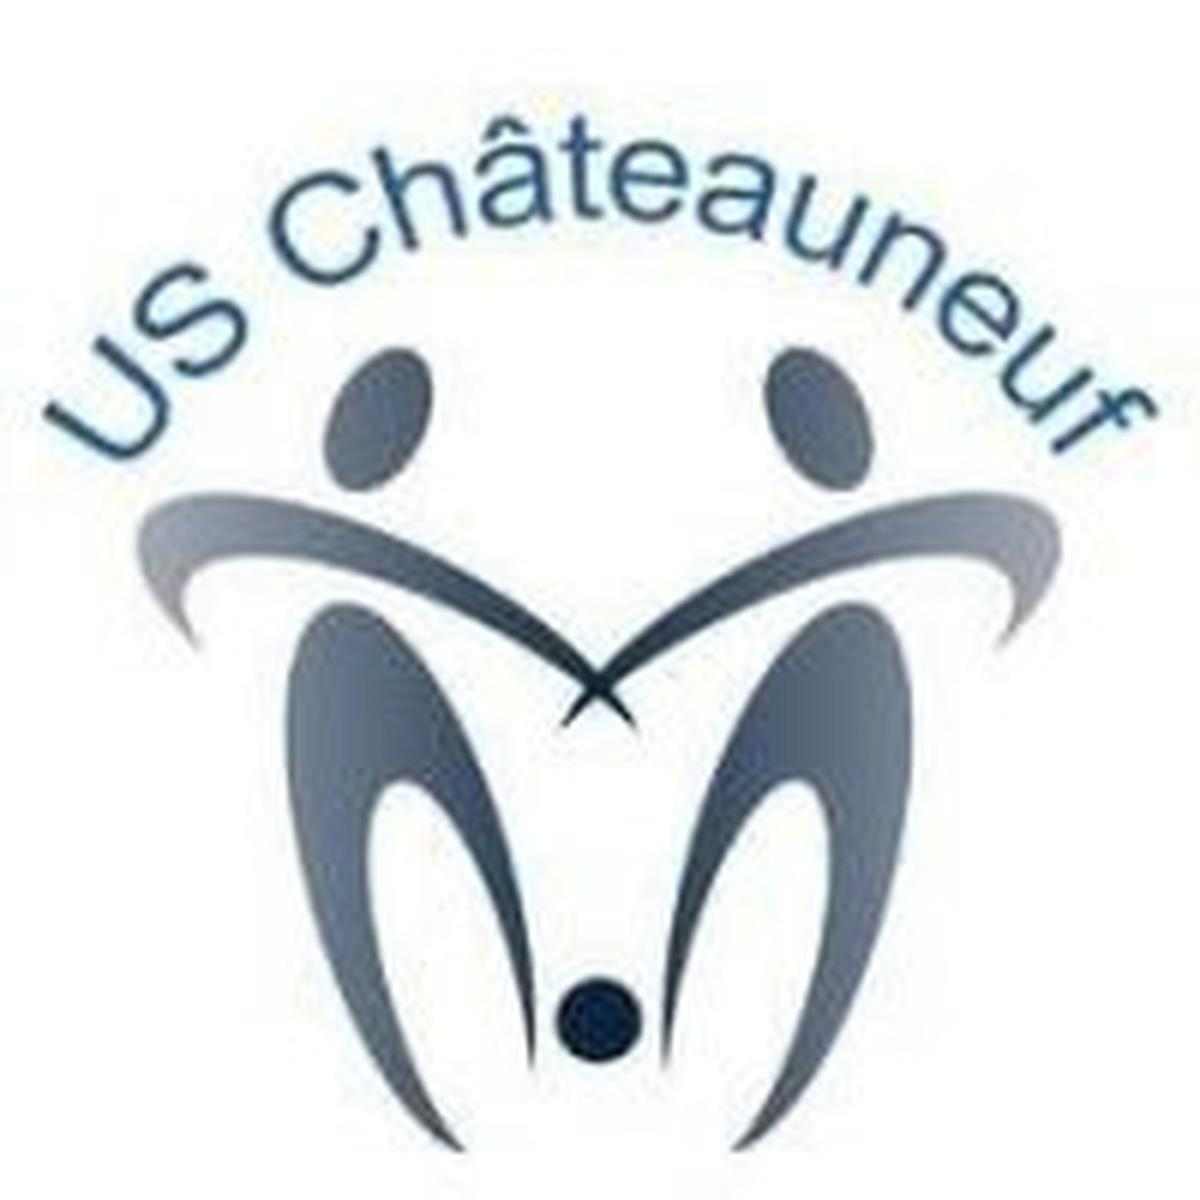 US CHATEAUNEUF / CHARENTE